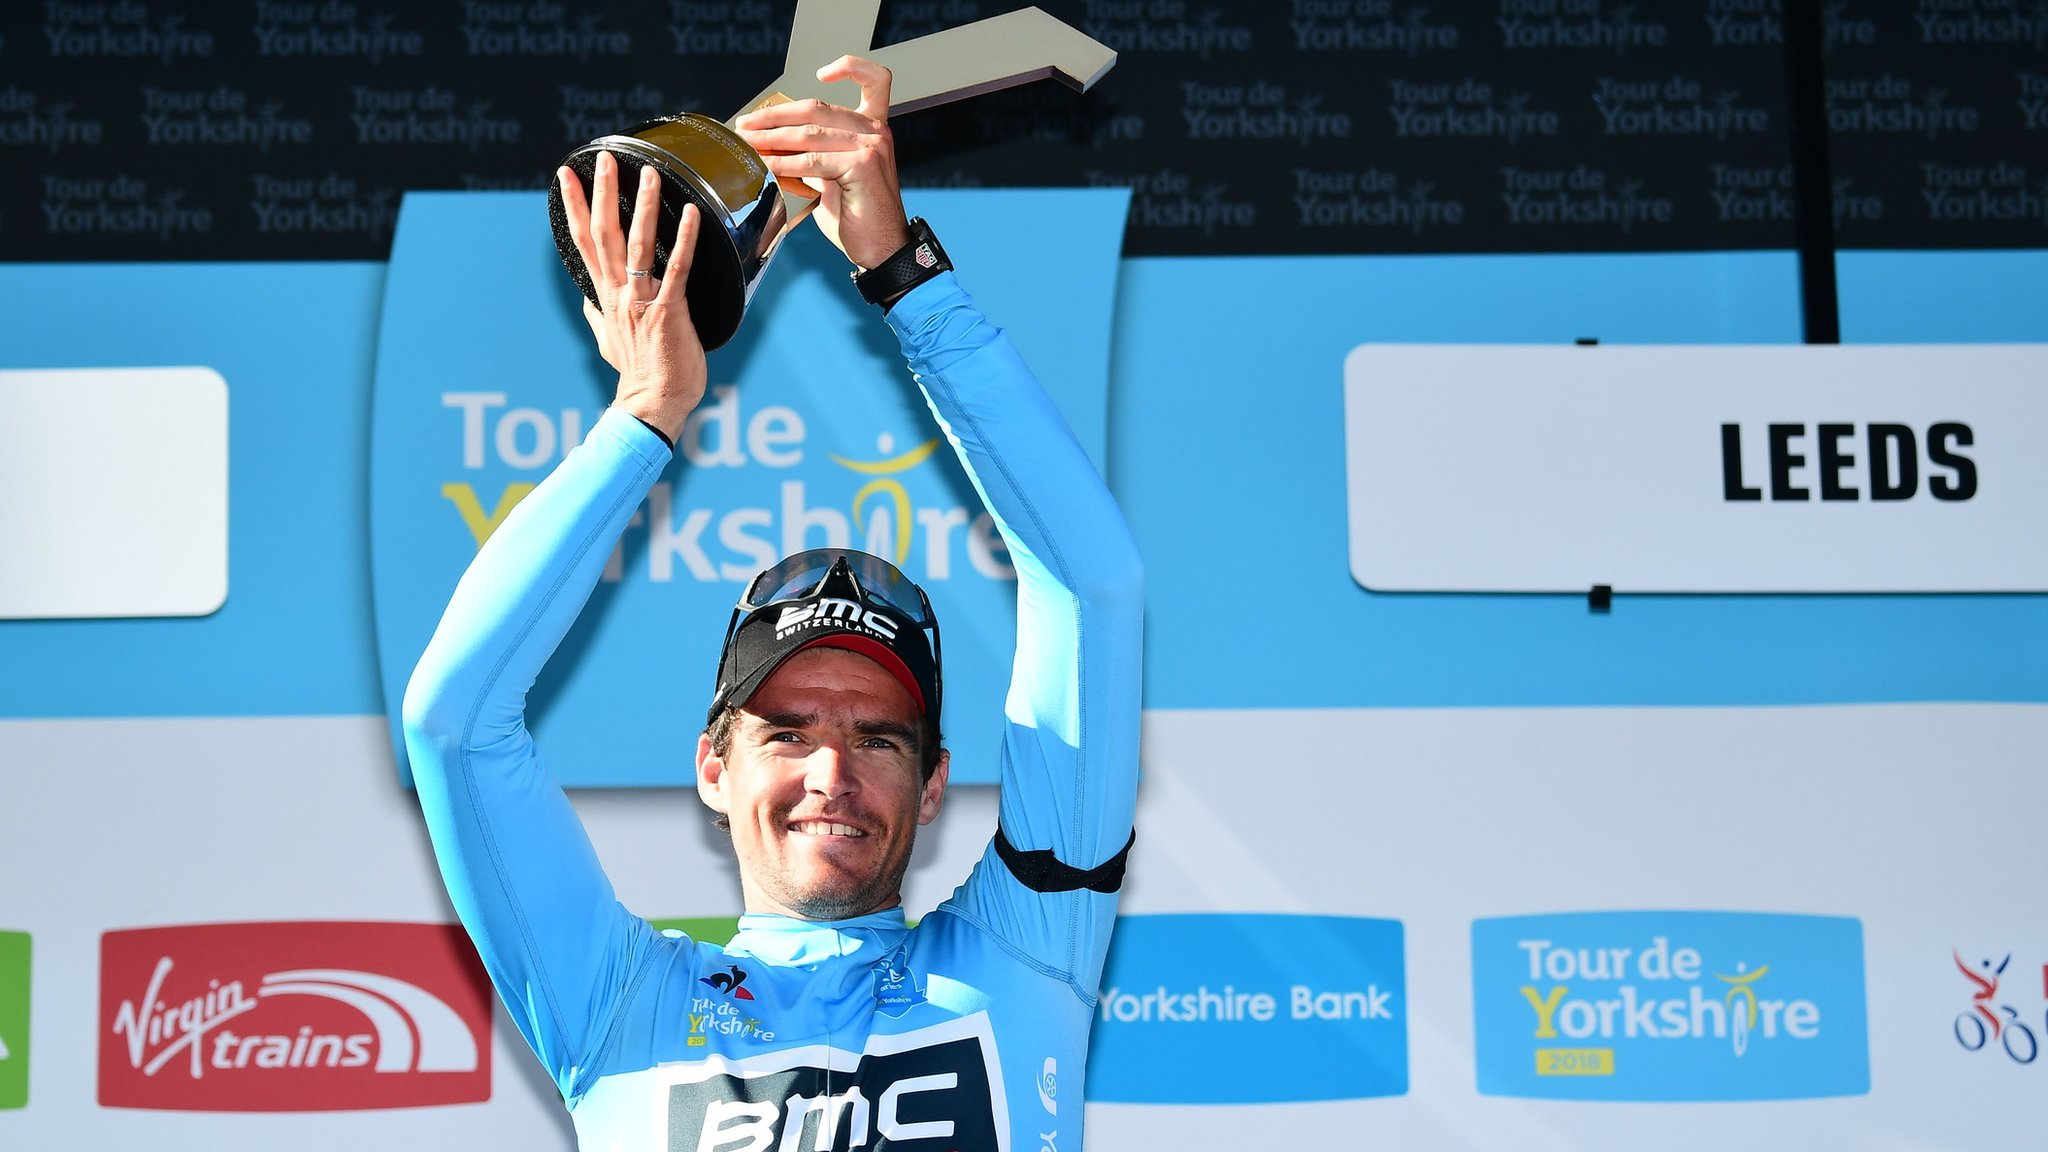 Tour de Yorkshire to use Worlds circuit in Harrogate